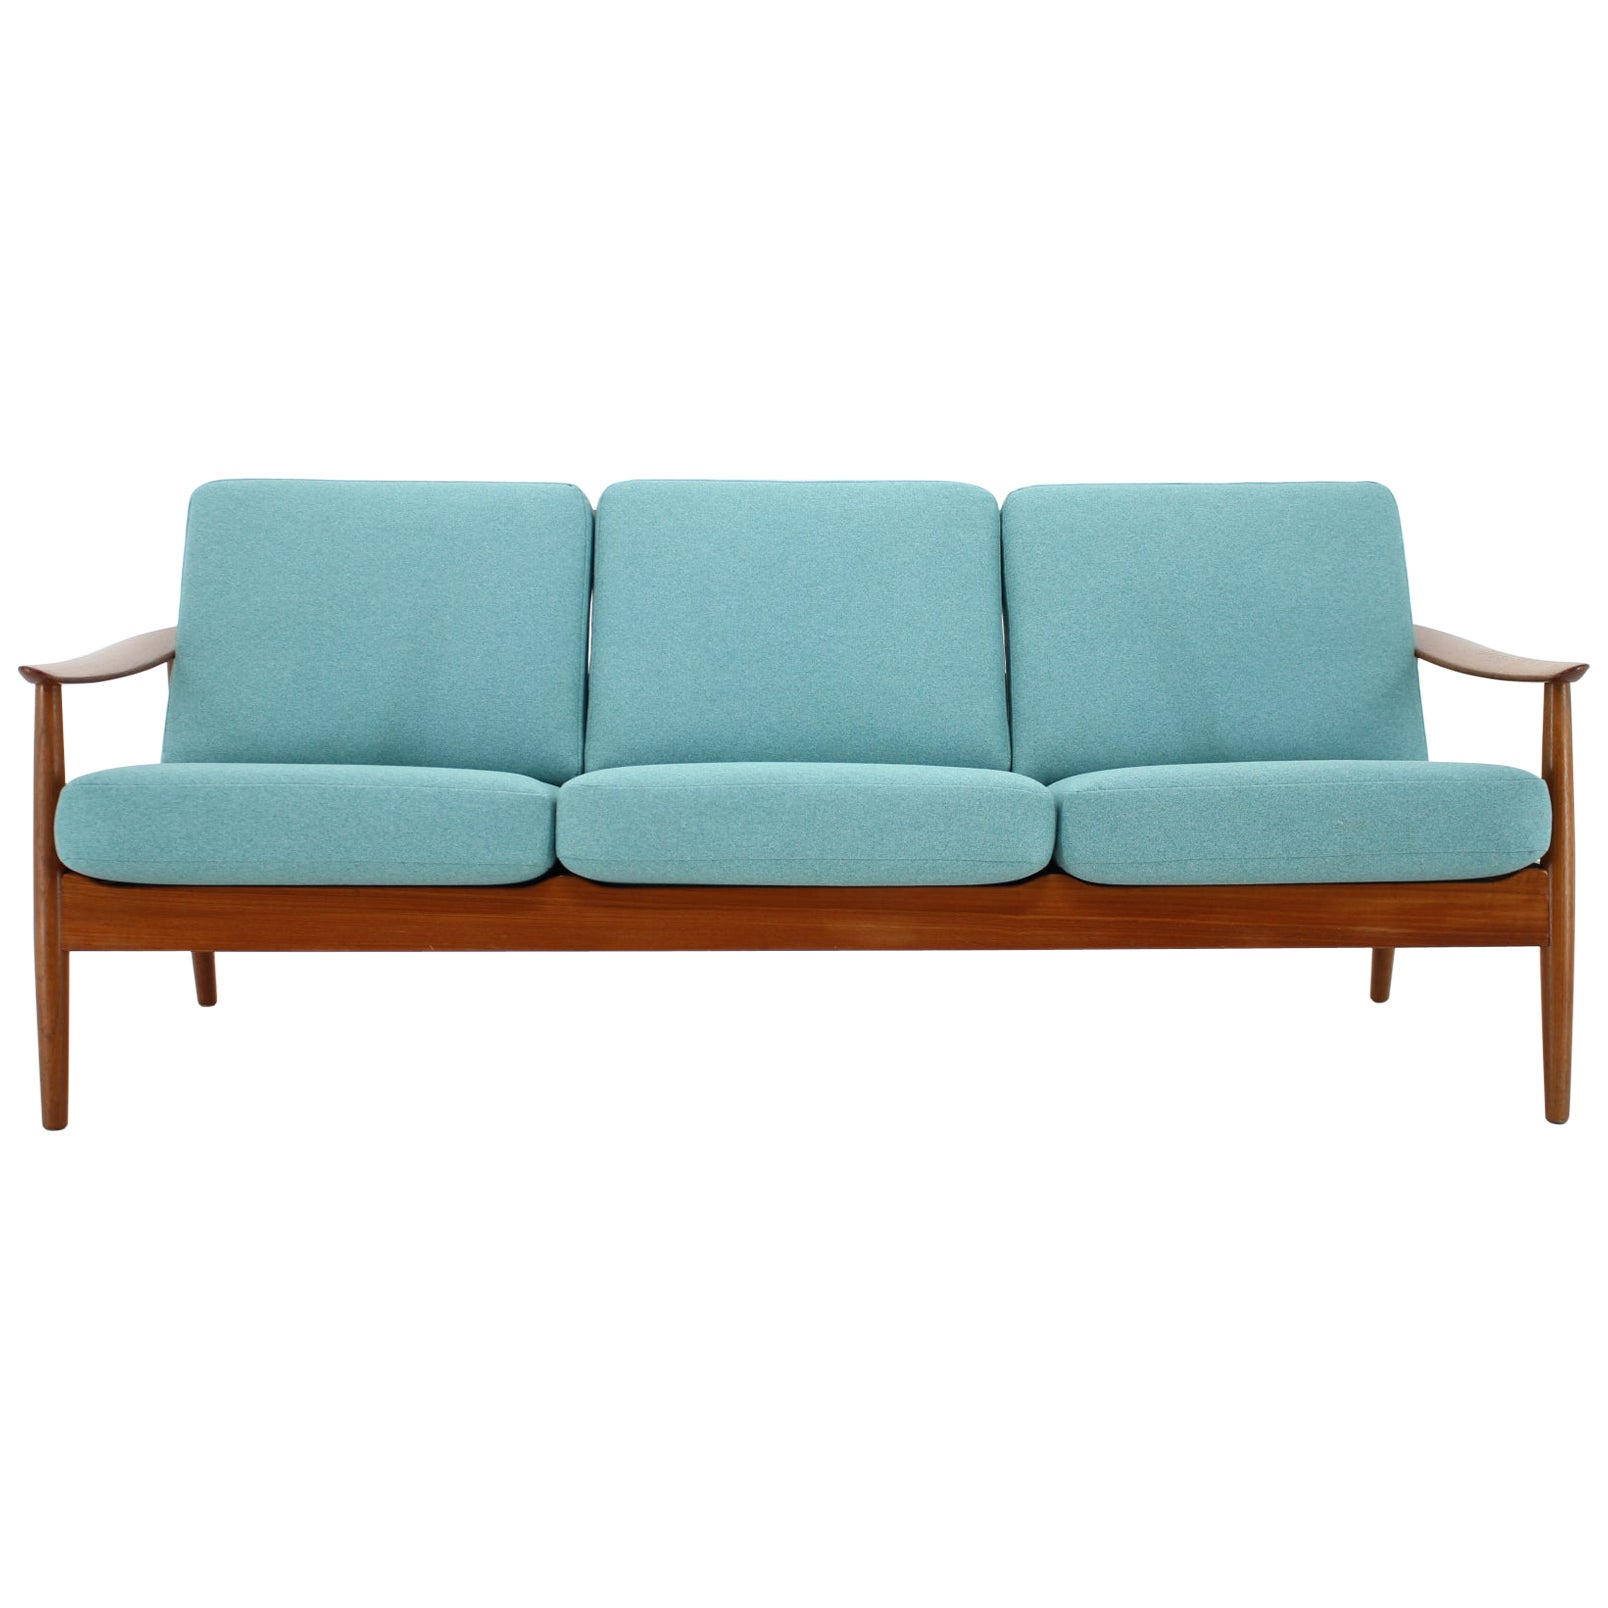 1960s Arne Vodder 3-Seat Sofa for France & Søn, Denmark